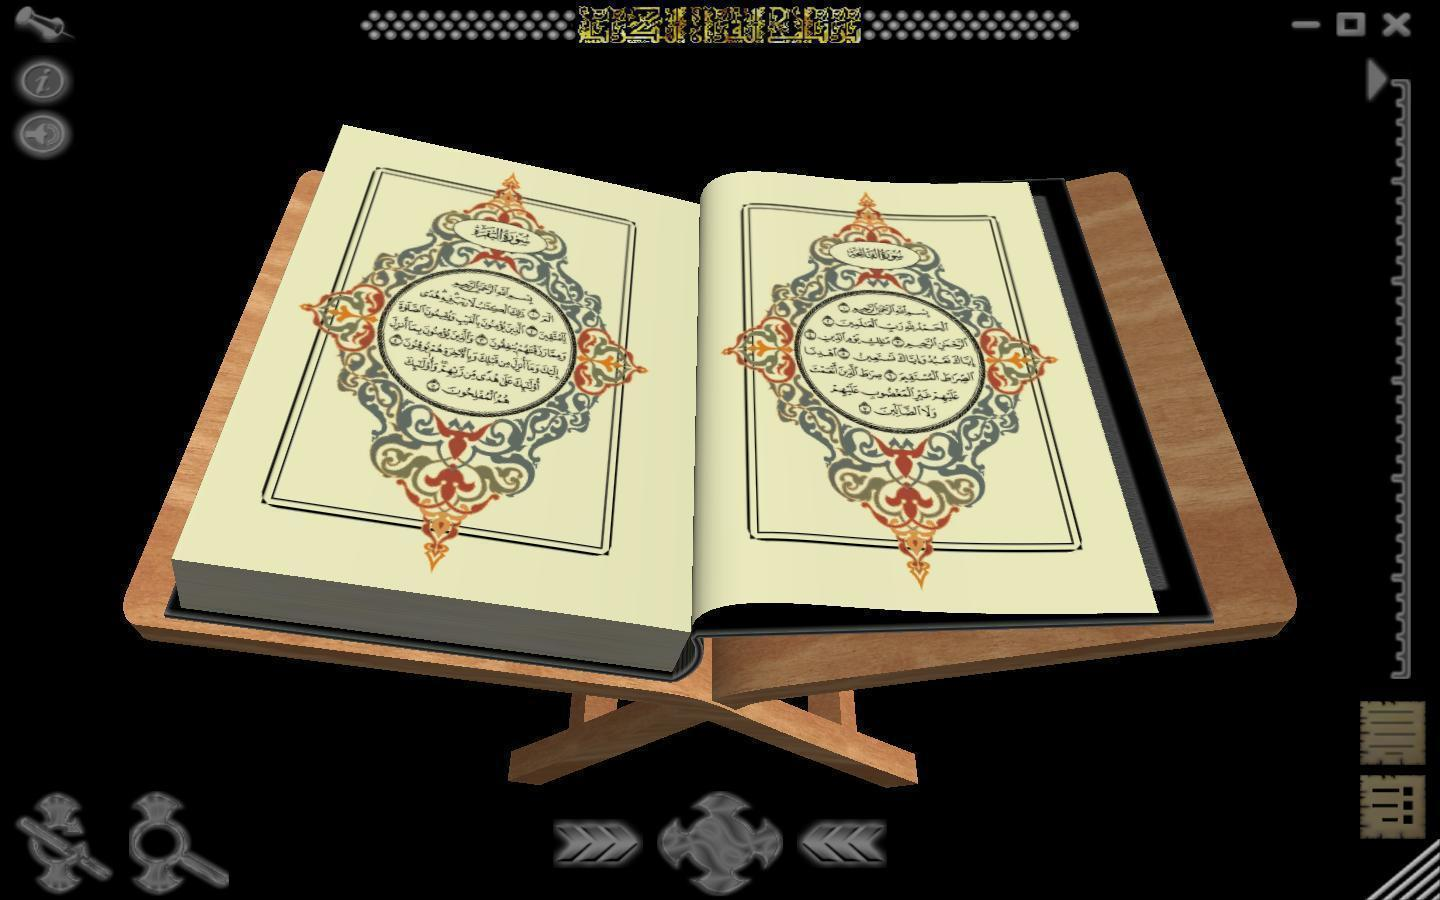 wallpapers with holy quran - photo #16